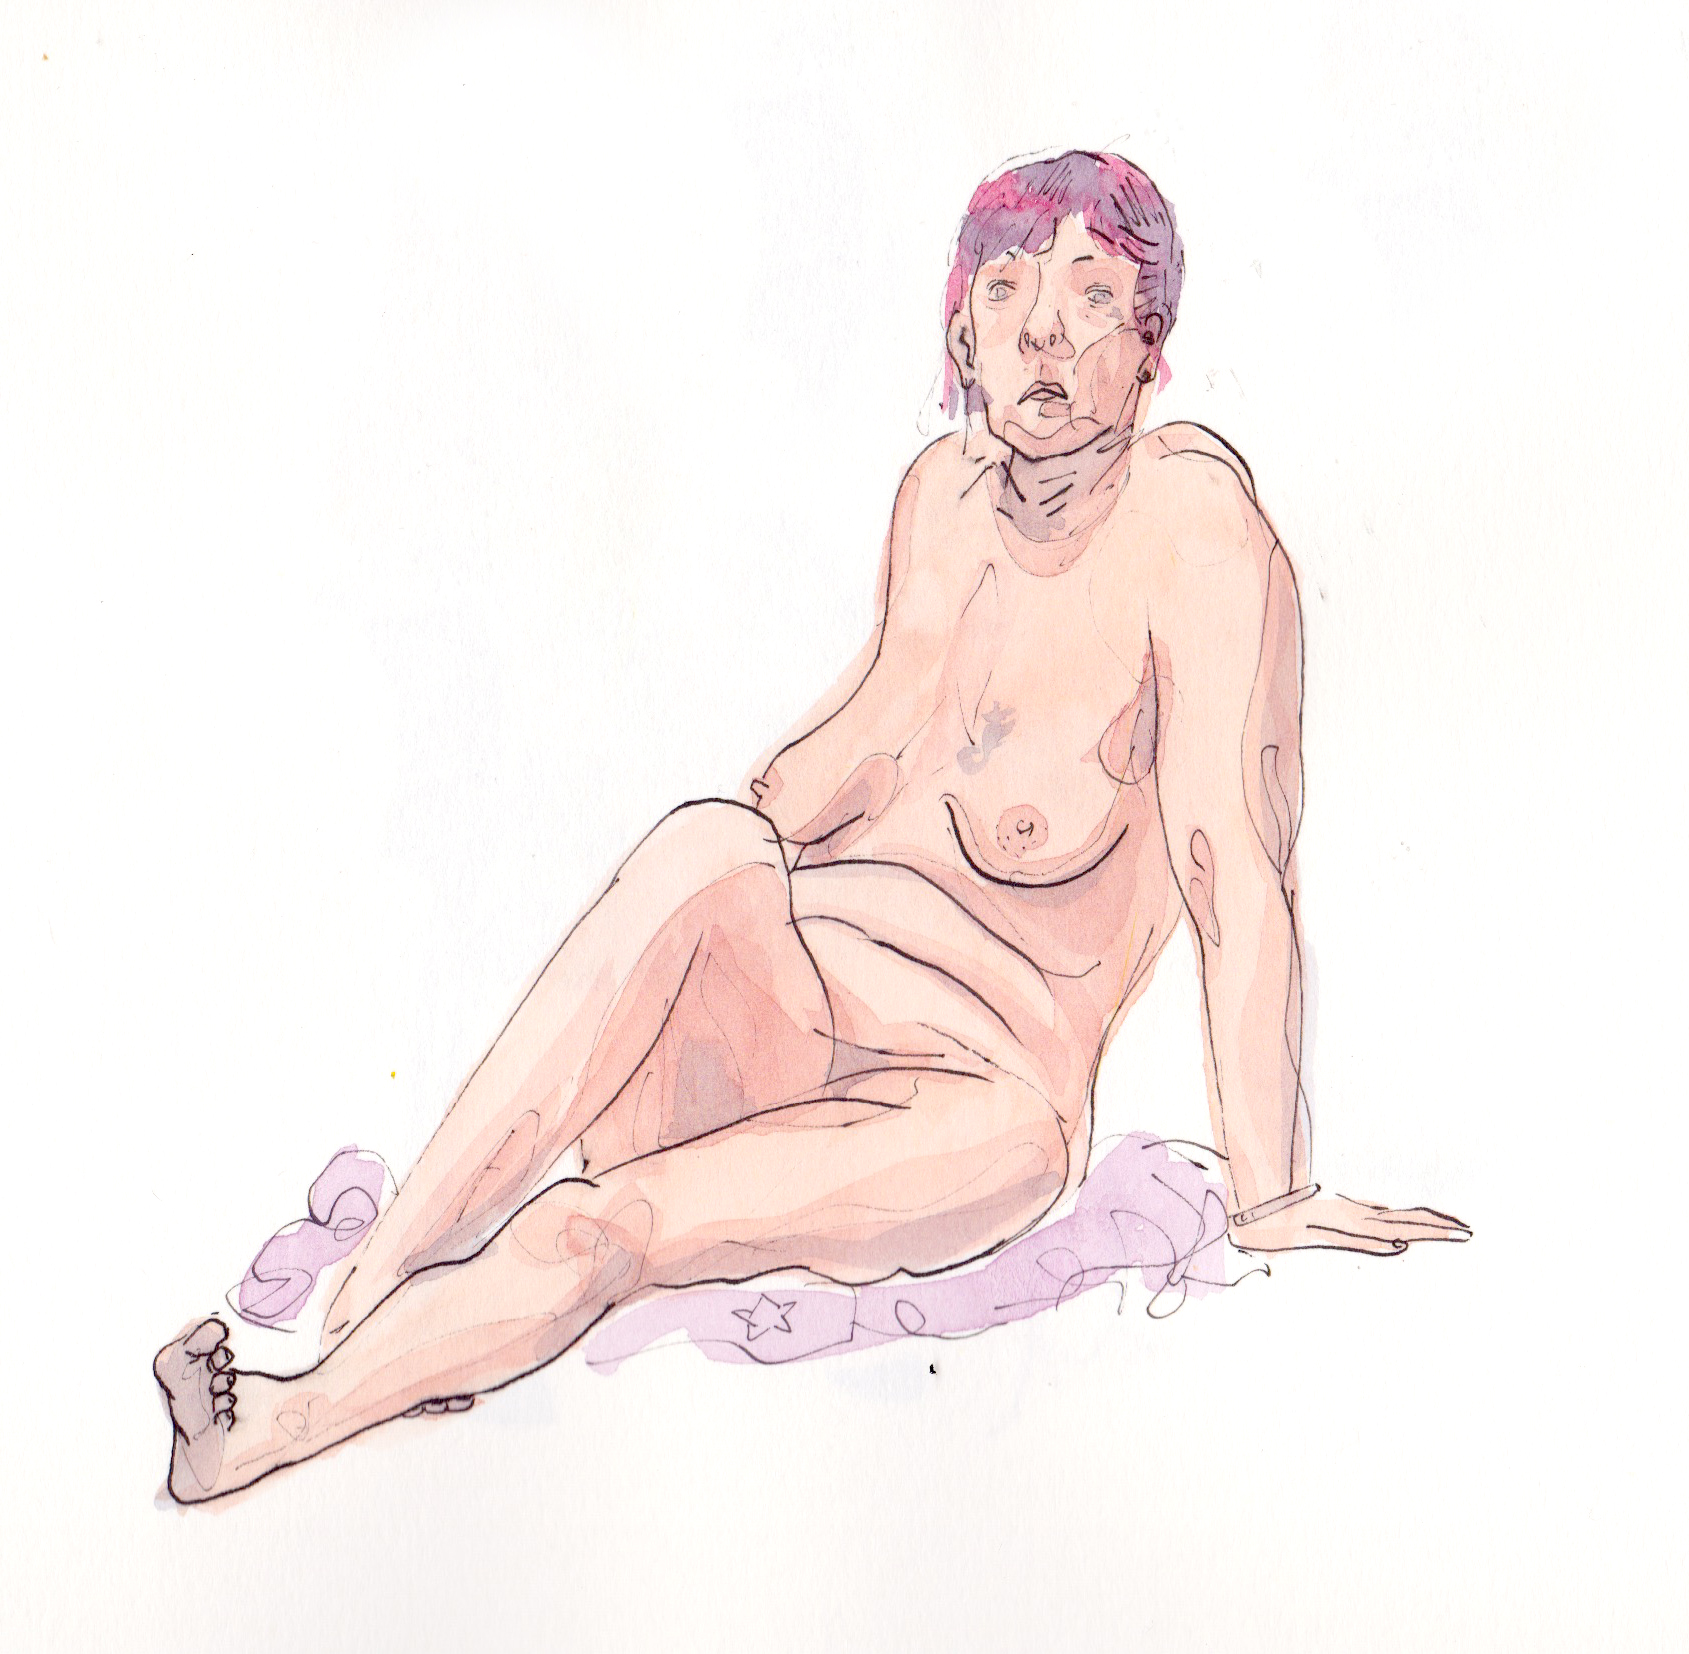 lifedrawing 06